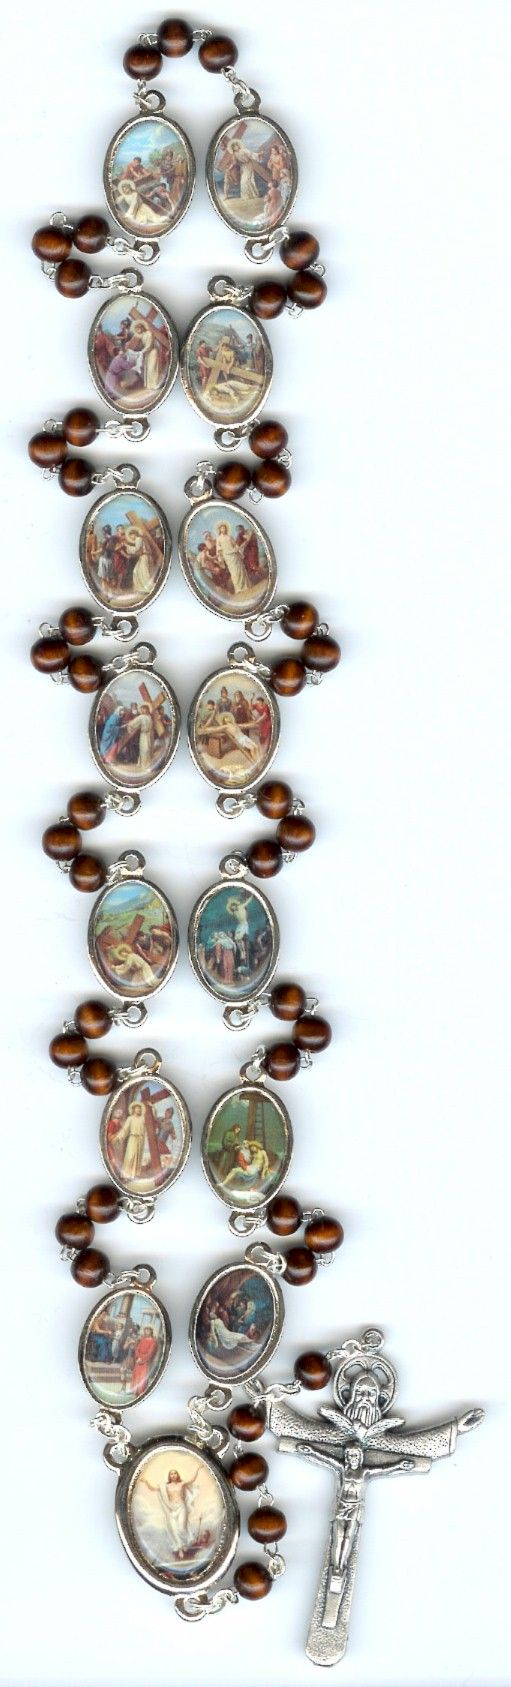 Stations of the Cross Rosary. Love this!